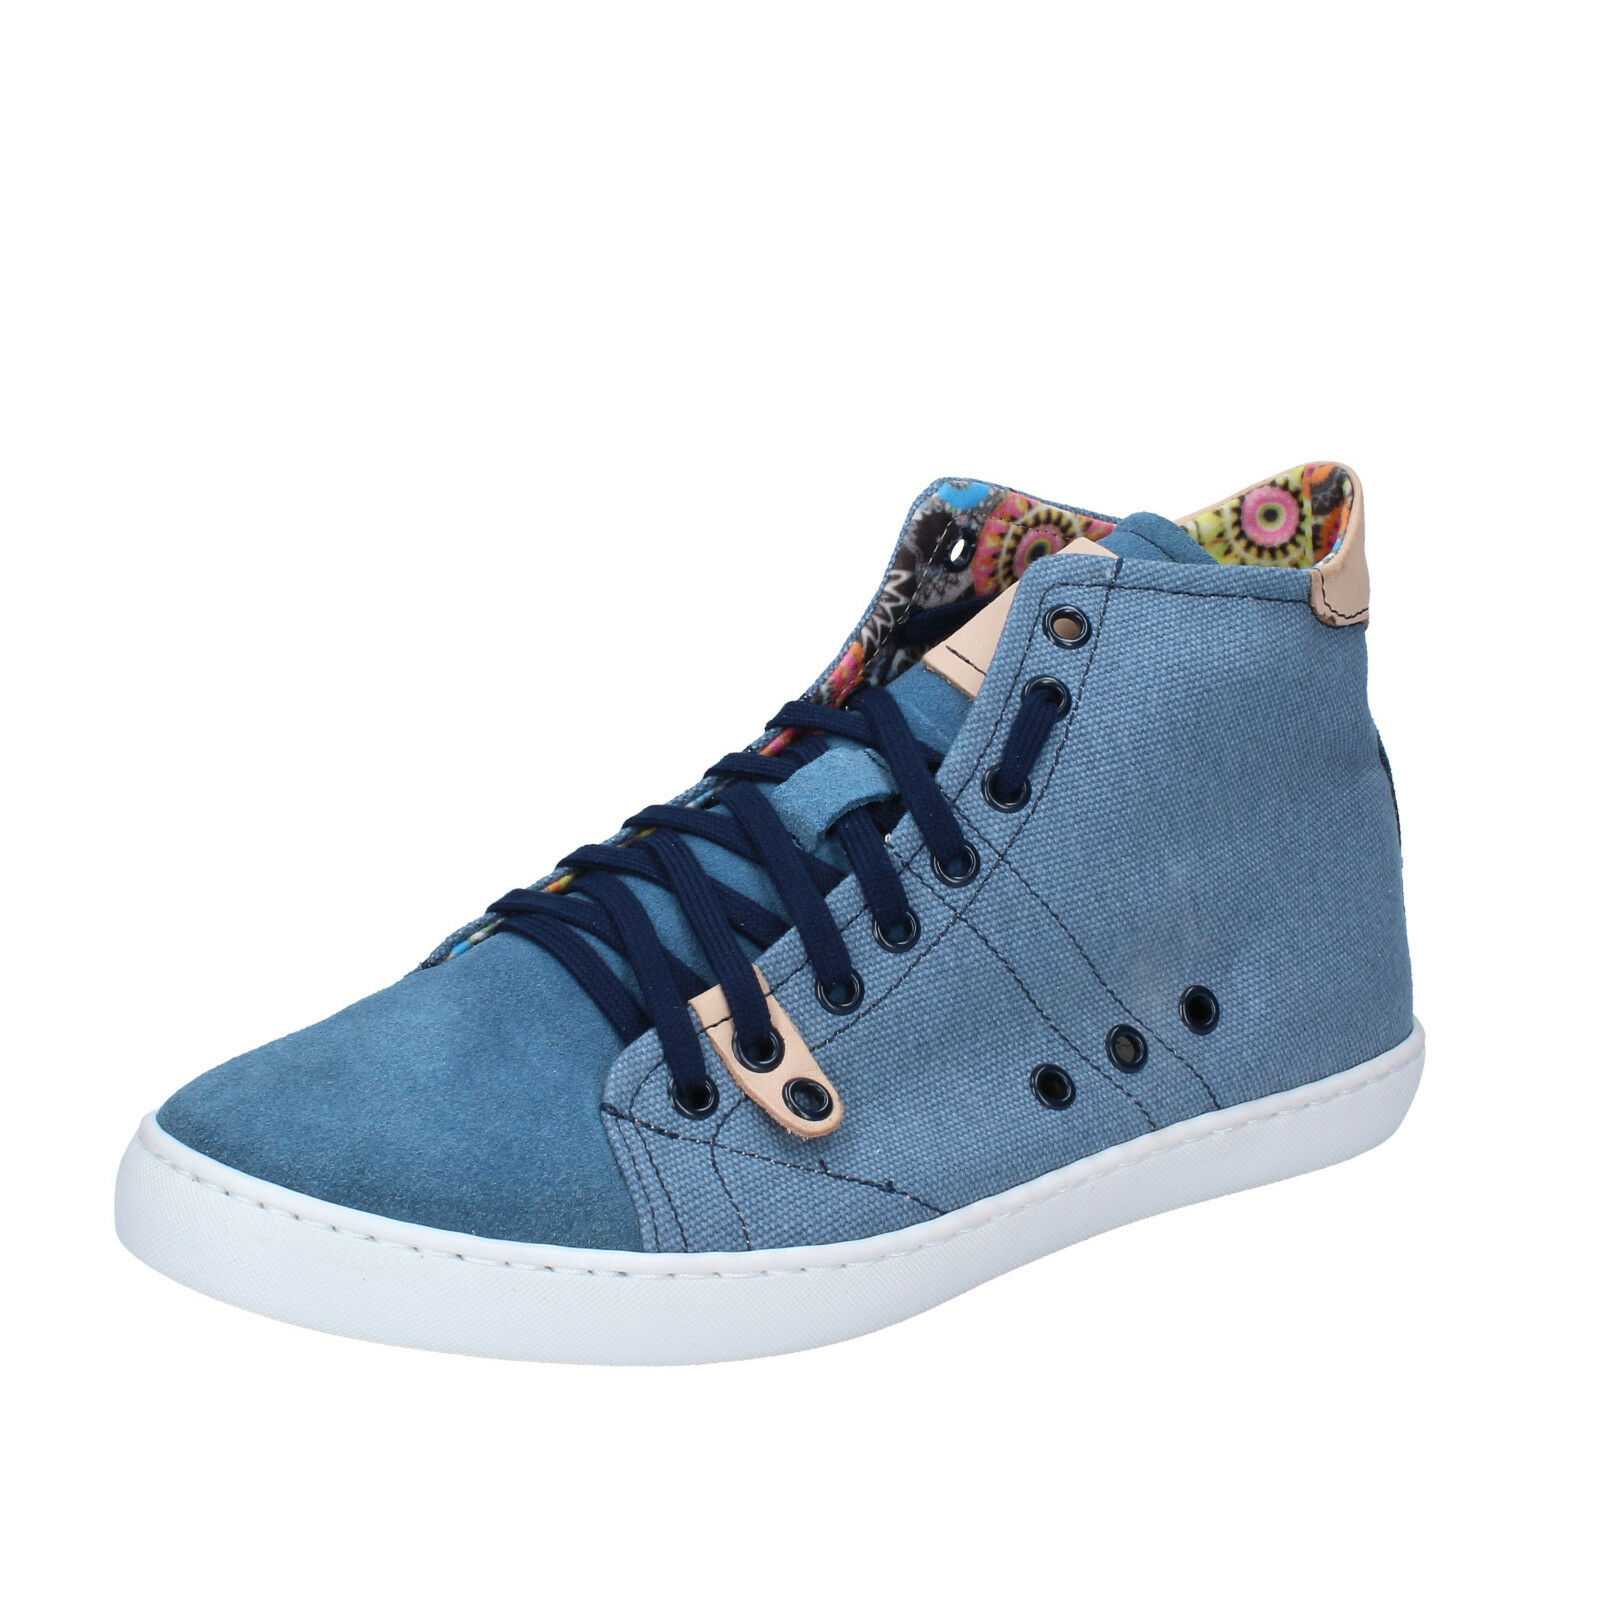 men's shoes KTL BY CORAF 8 () sneakers blue textile suede BY99-C